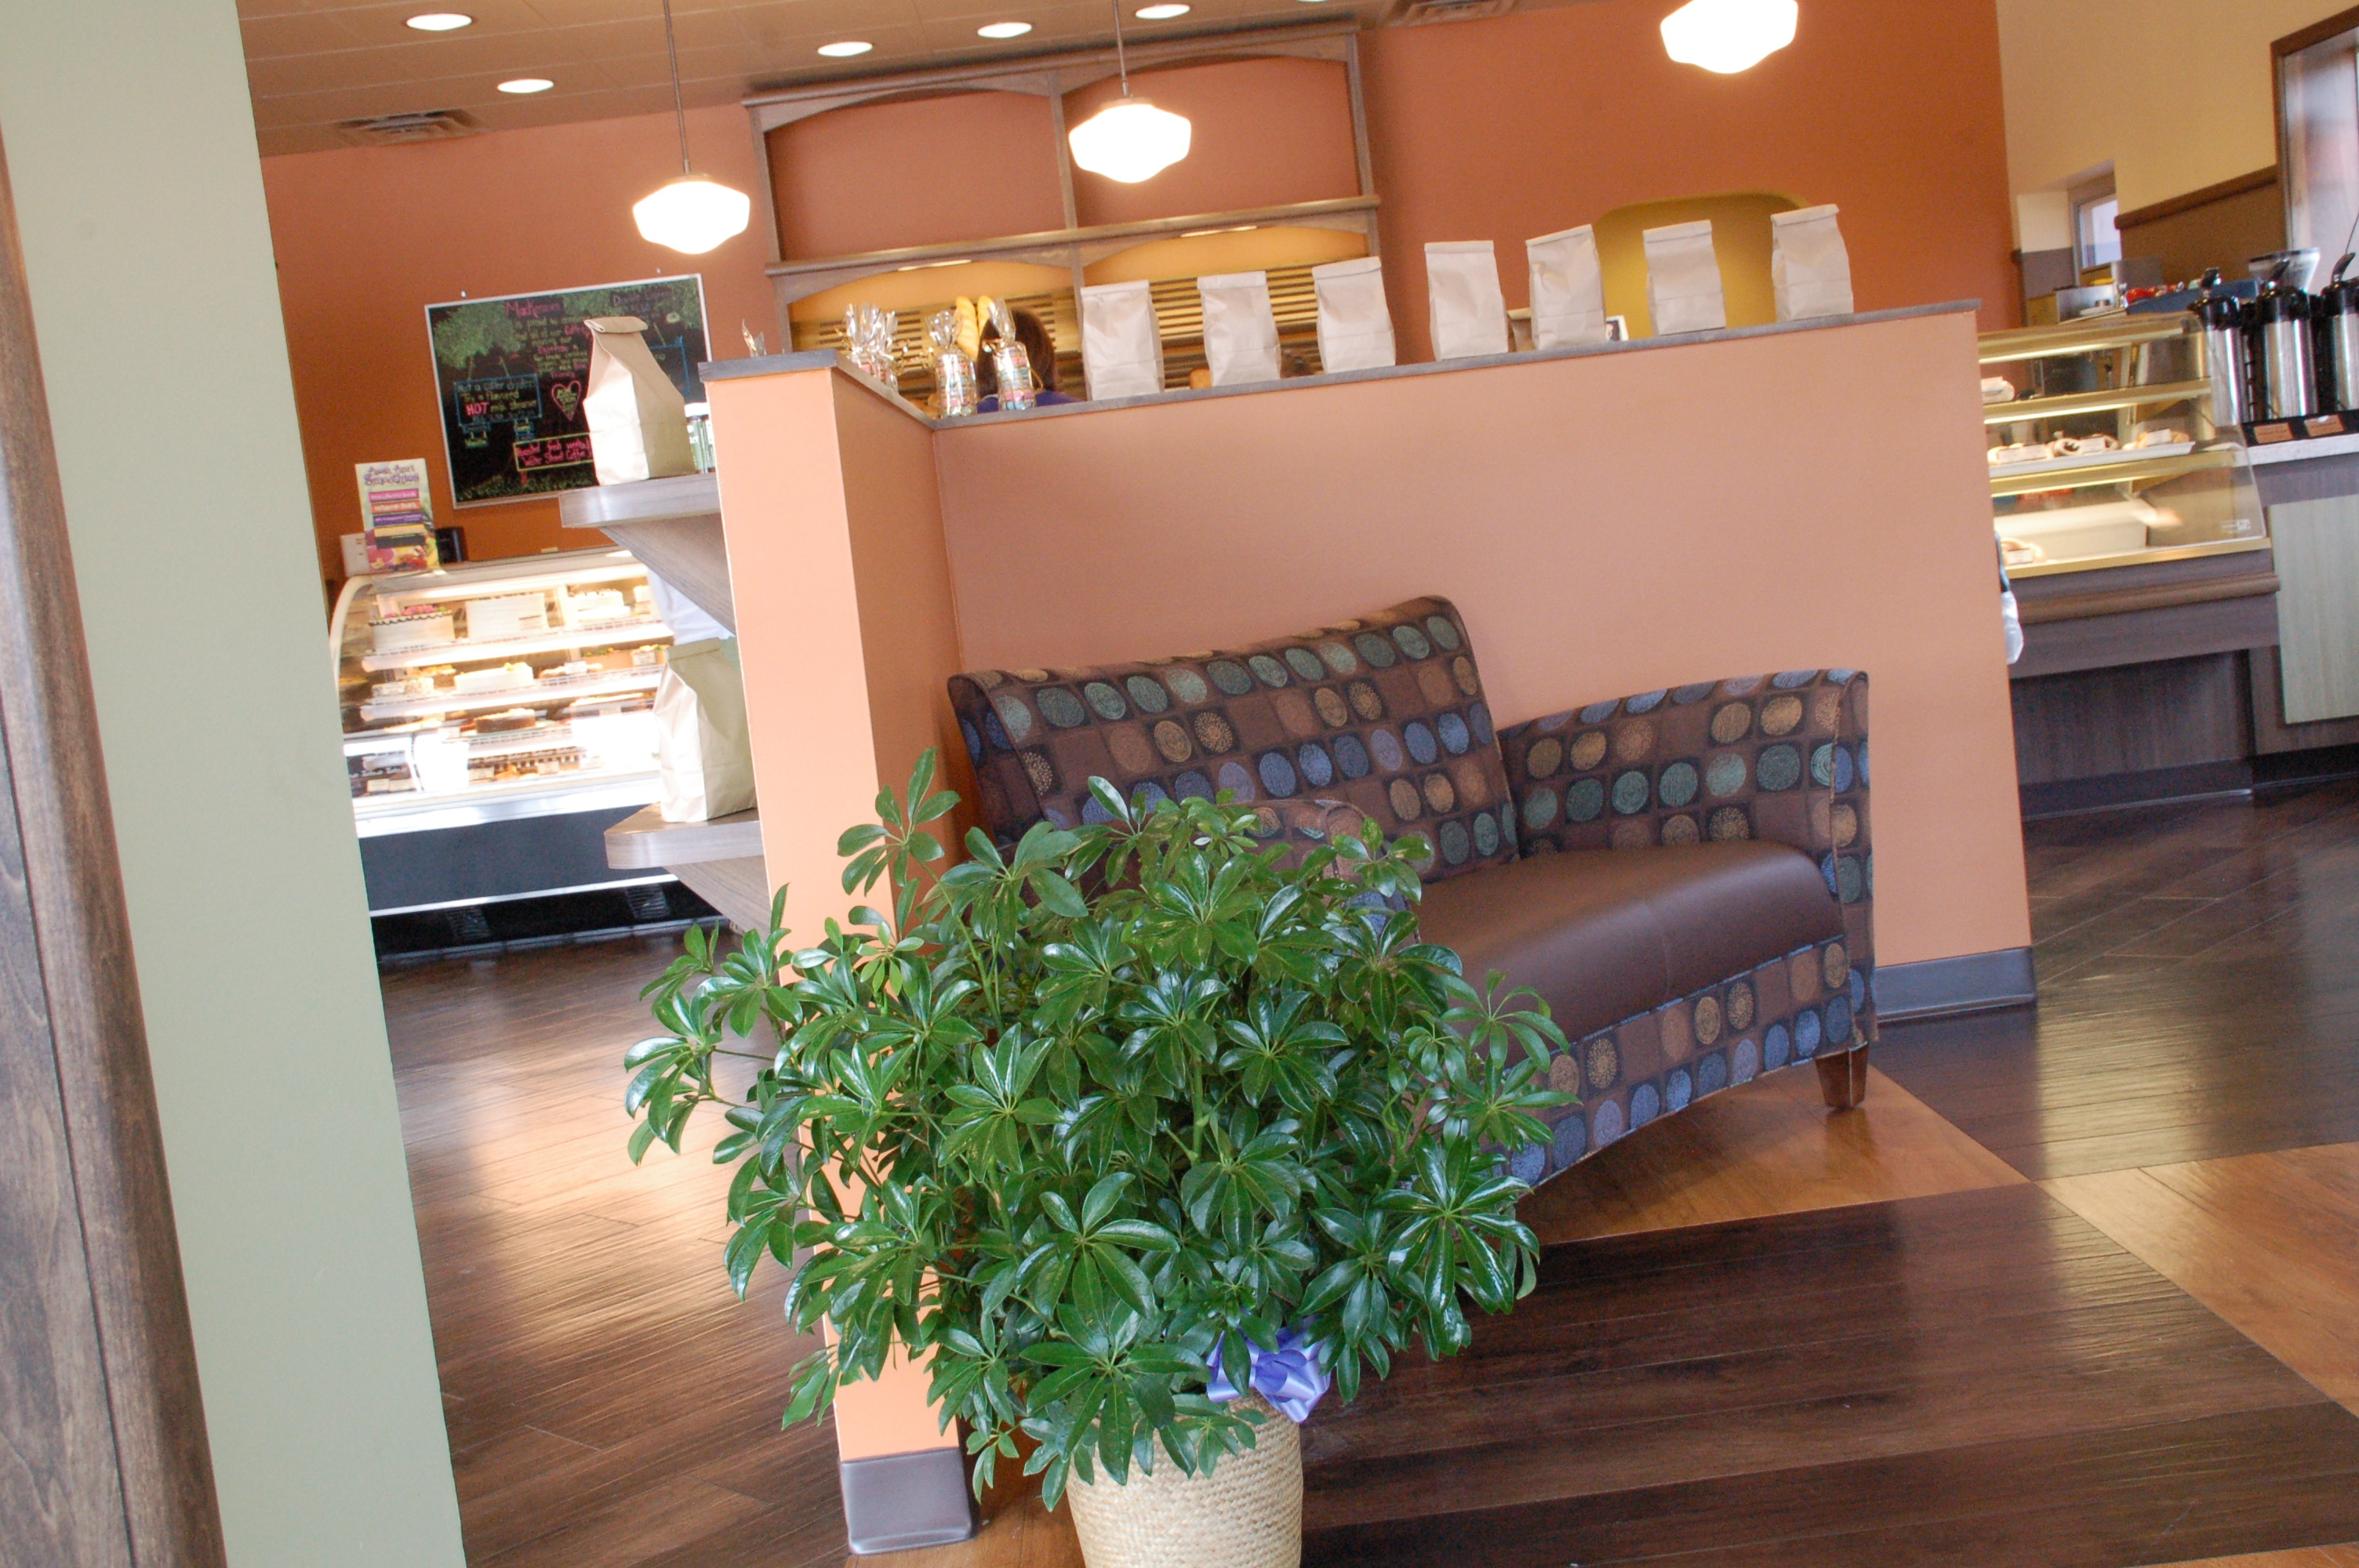 Bakery Seating Area Design